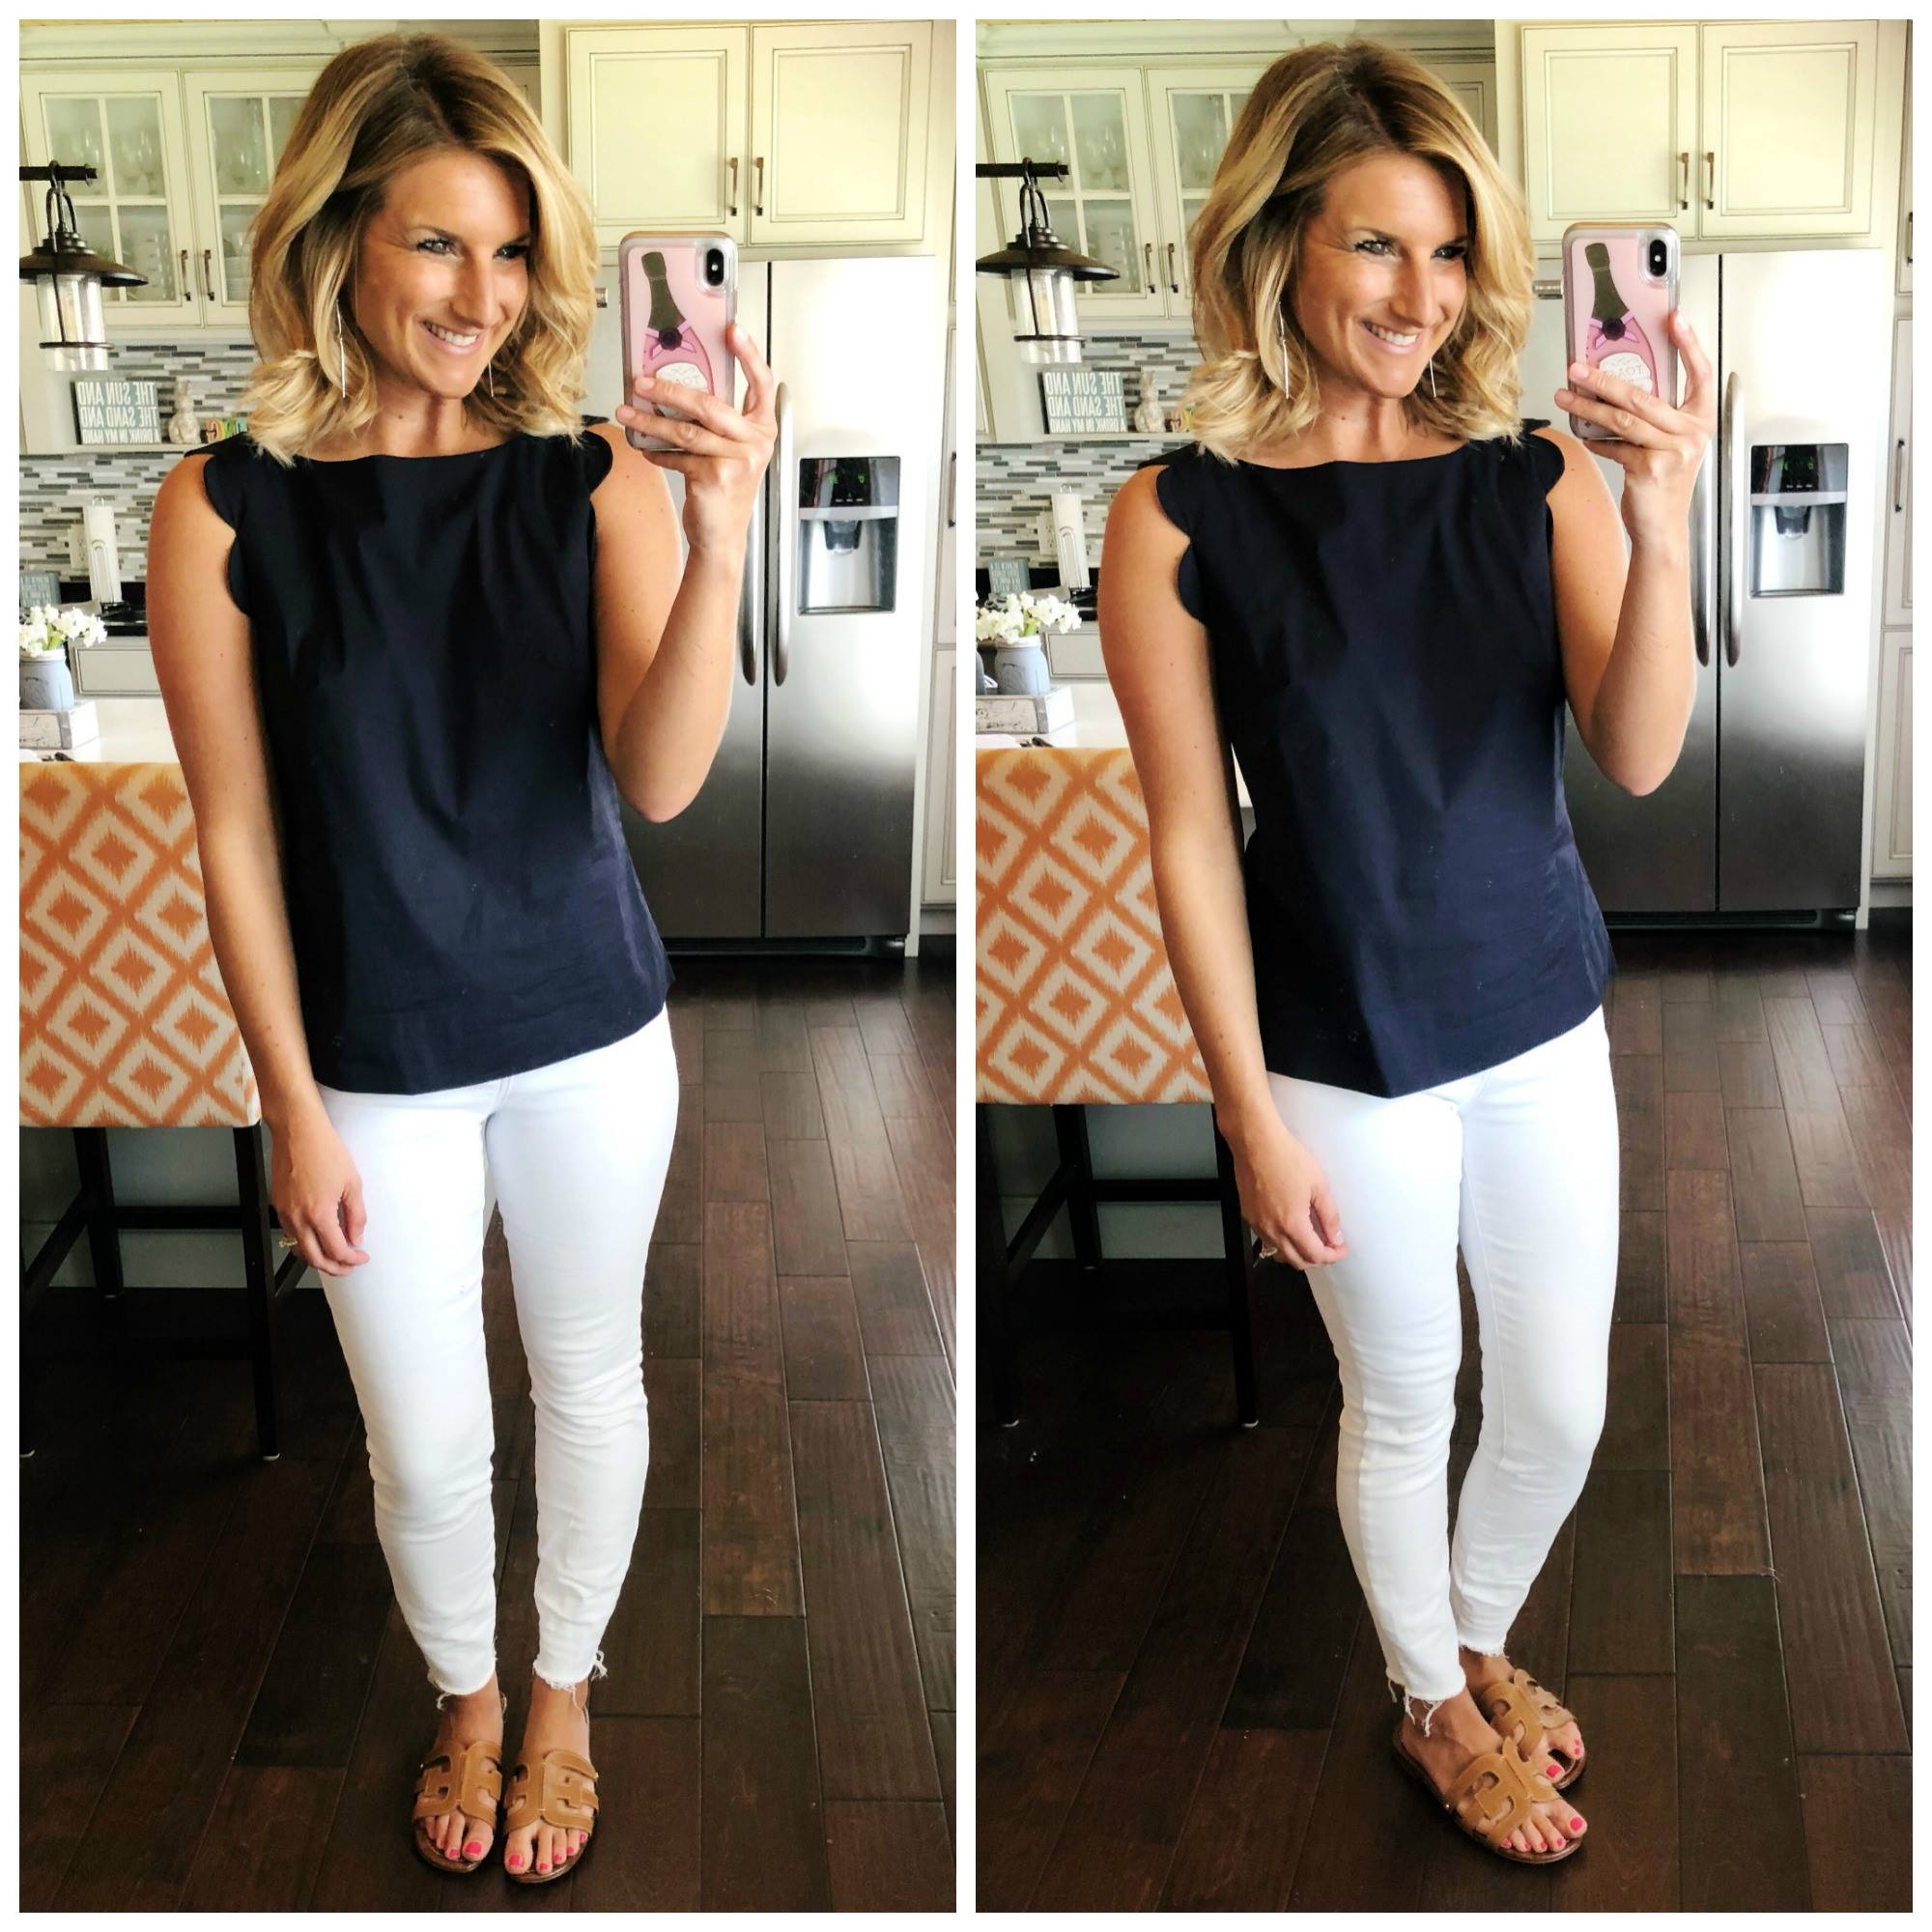 Work to Play Outfit // Work Outfit Inspiration // Scalloped Tank with non sheer white jeans and slide sandals